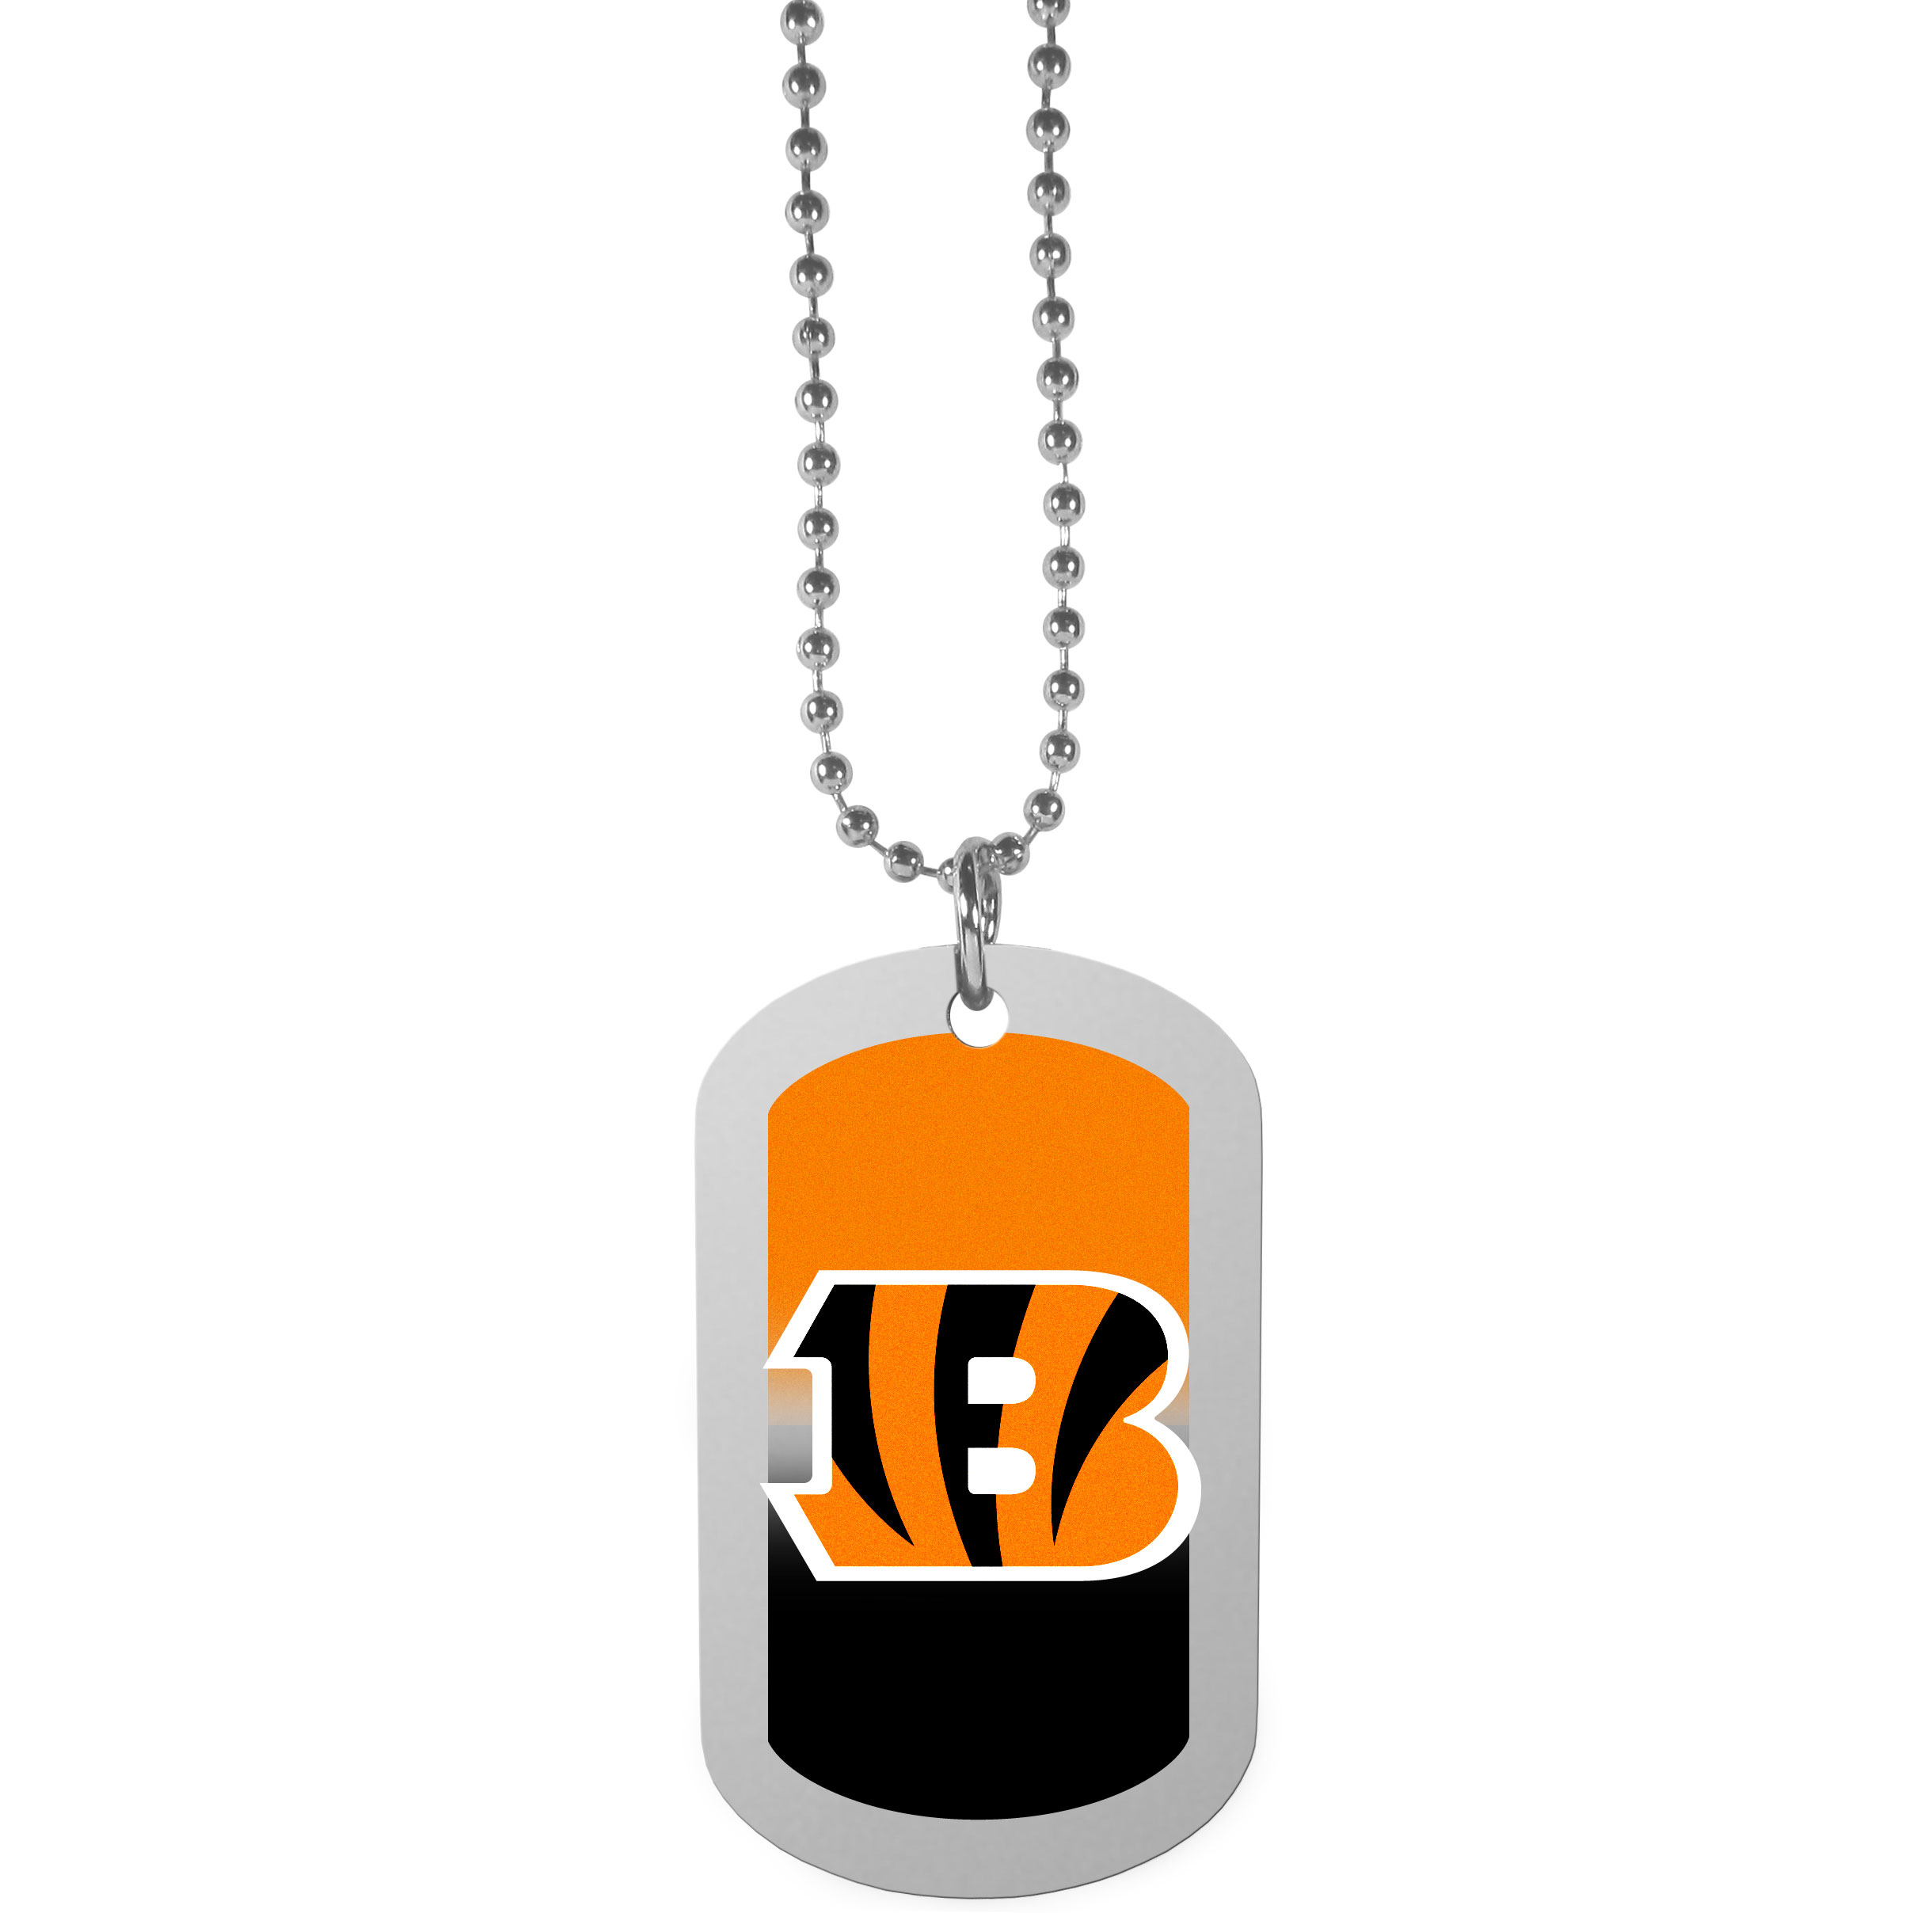 Cincinnati Bengals Team Tag Necklace - Dog tag necklaces are a fashion statement that is here to stay. The sporty version of the classic tag features a gradient print in team colors featuring a full color team logo over a high polish tag to create a bold and sporty look. The tag comes on a 26 inch ball chain with a ball and joint clasp. Any Cincinnati Bengals would be proud to wear this attractive fashion accessory.